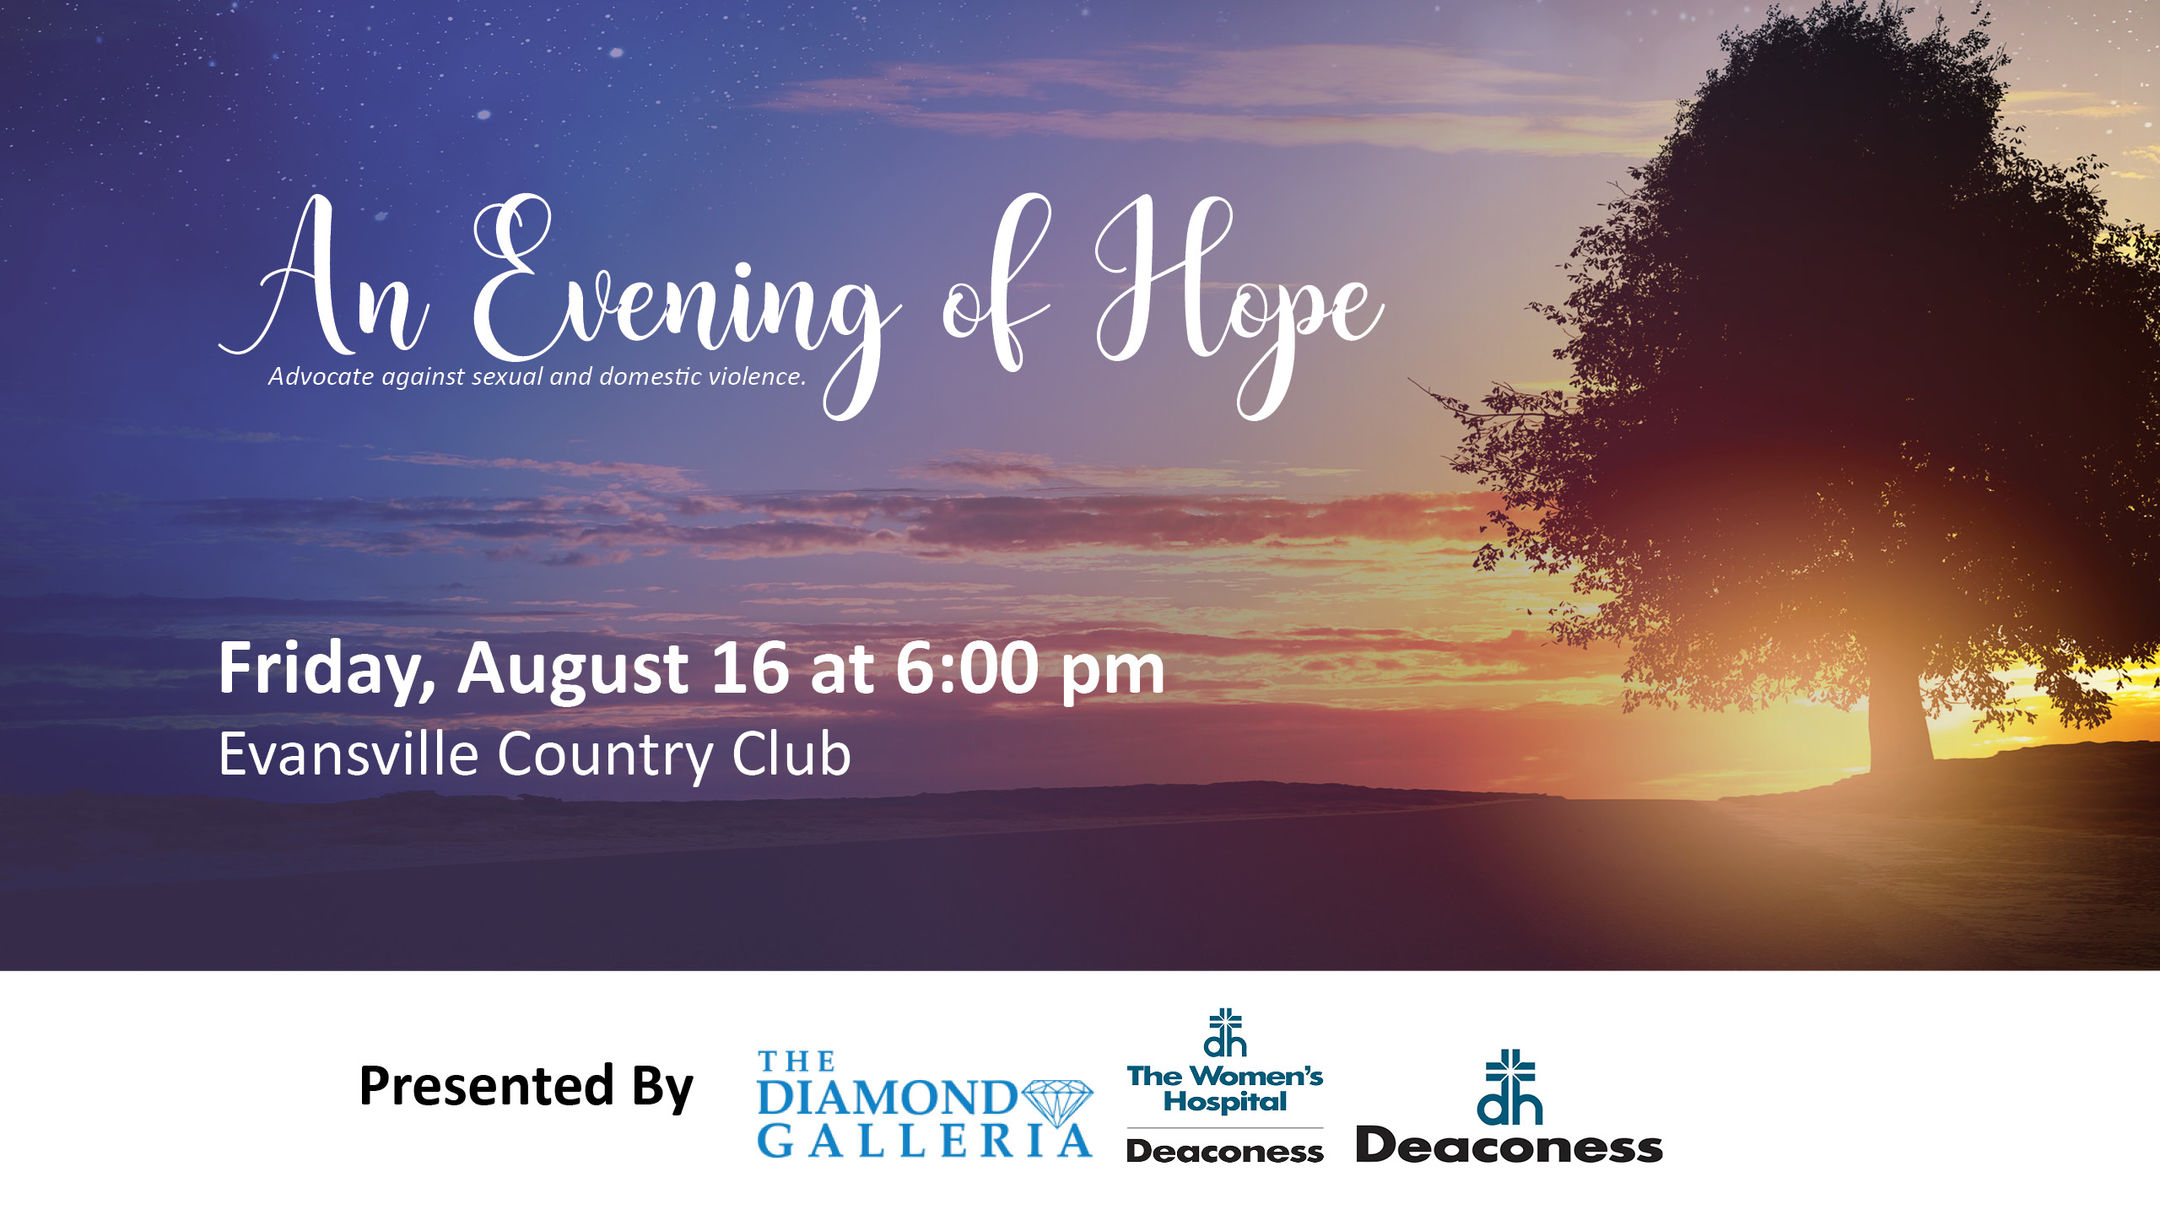 An Evening of Hope by Albion Fellows Bacon Center